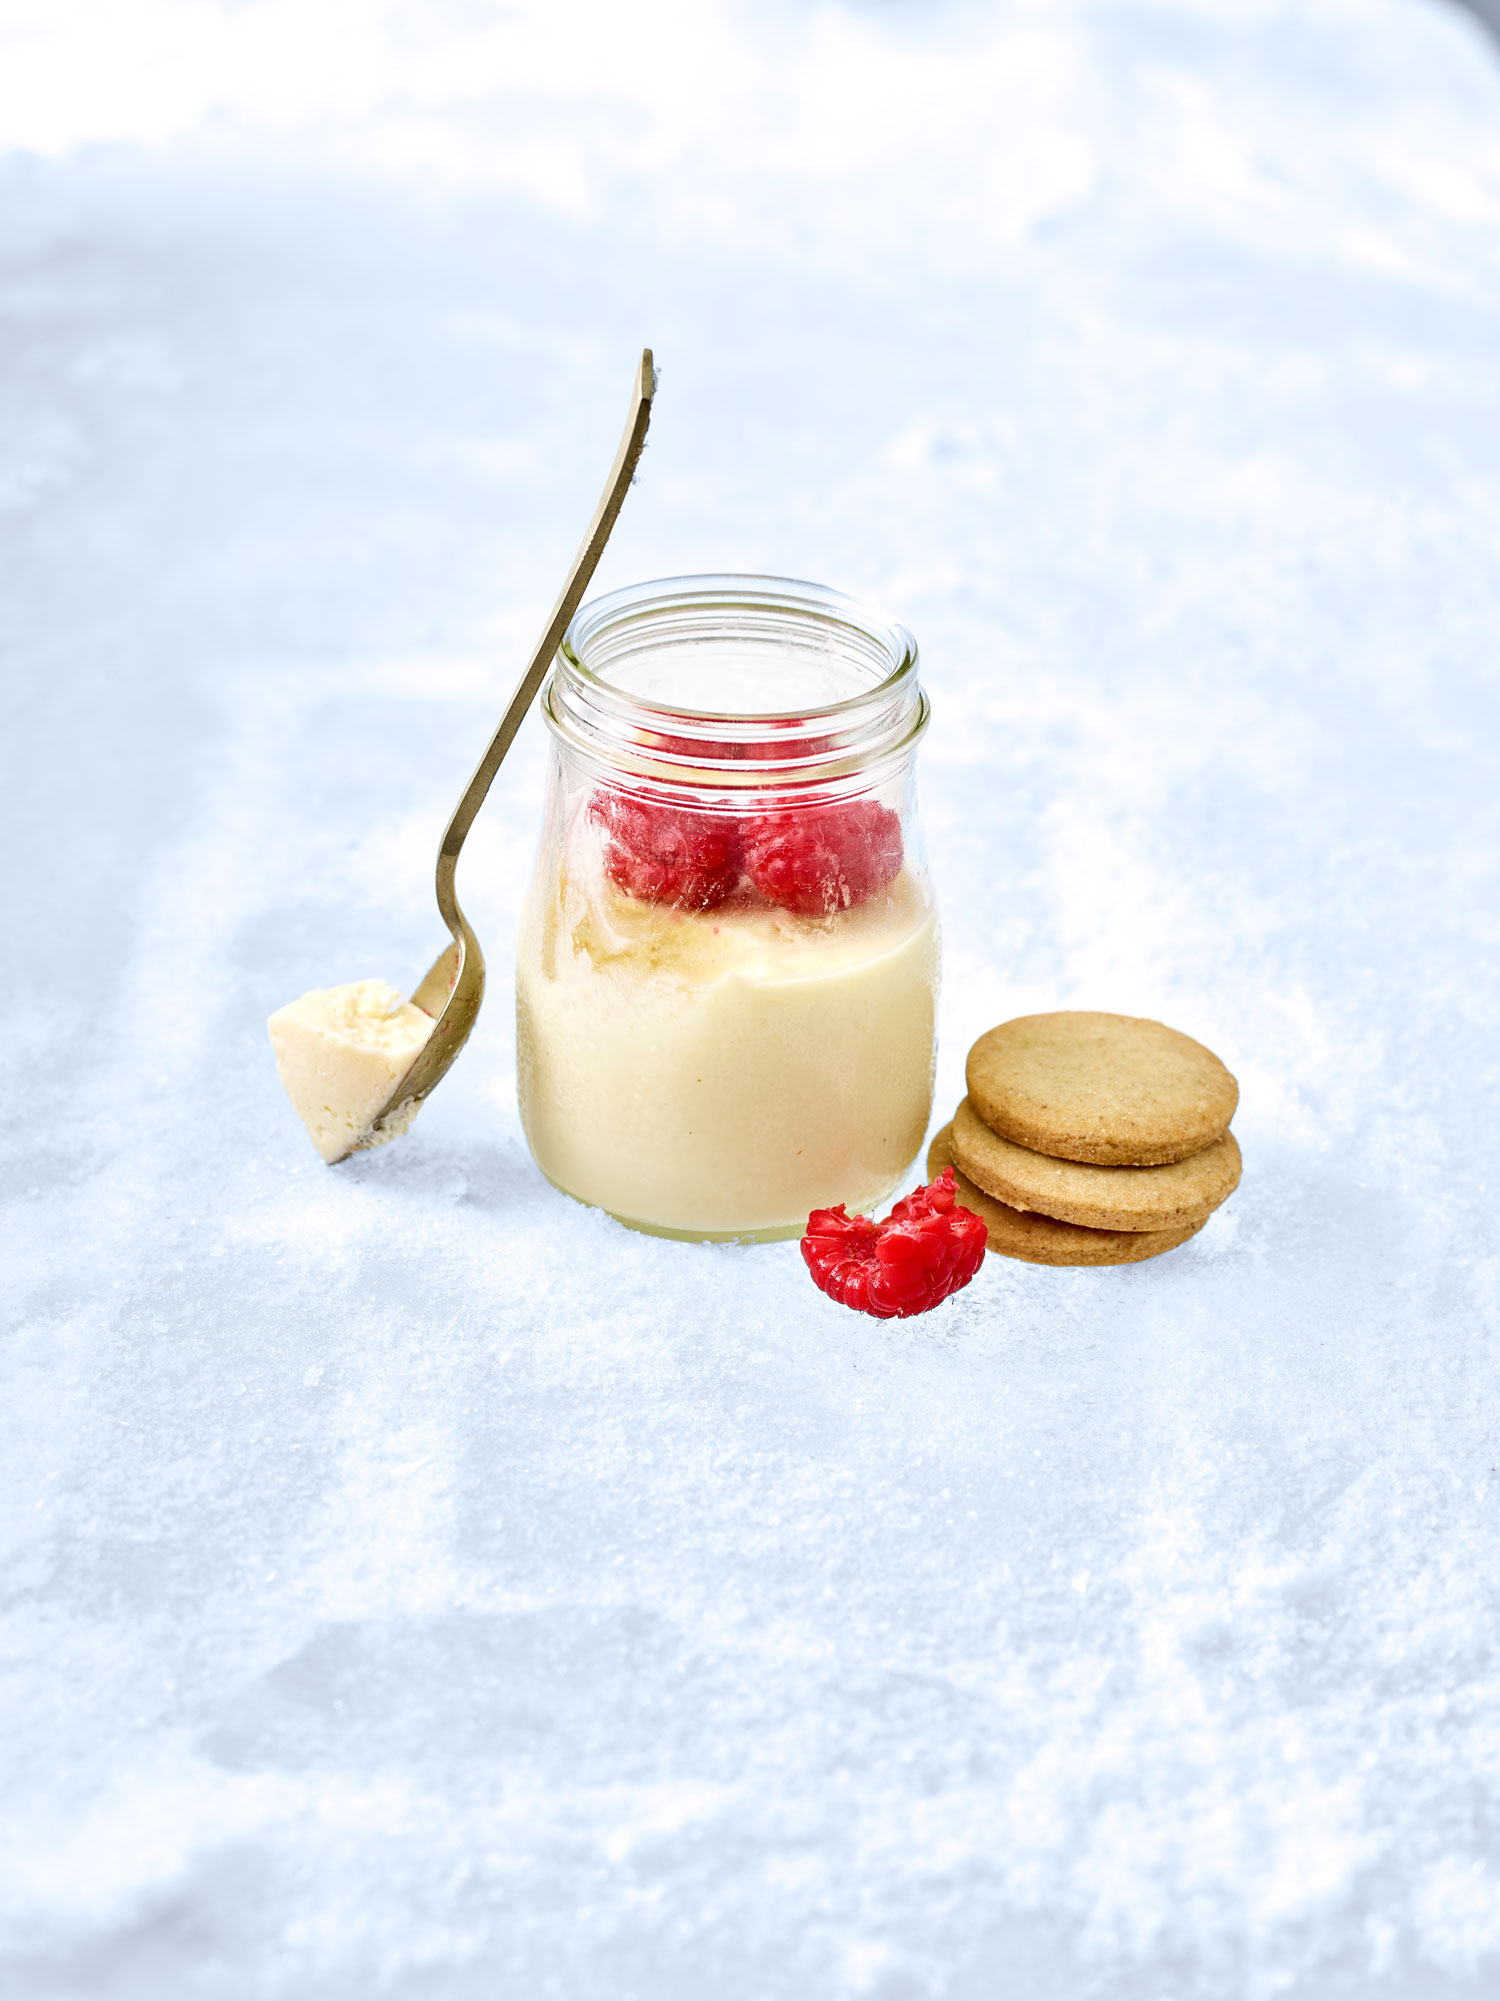 White-chocolate-and-raspberry-pots copy